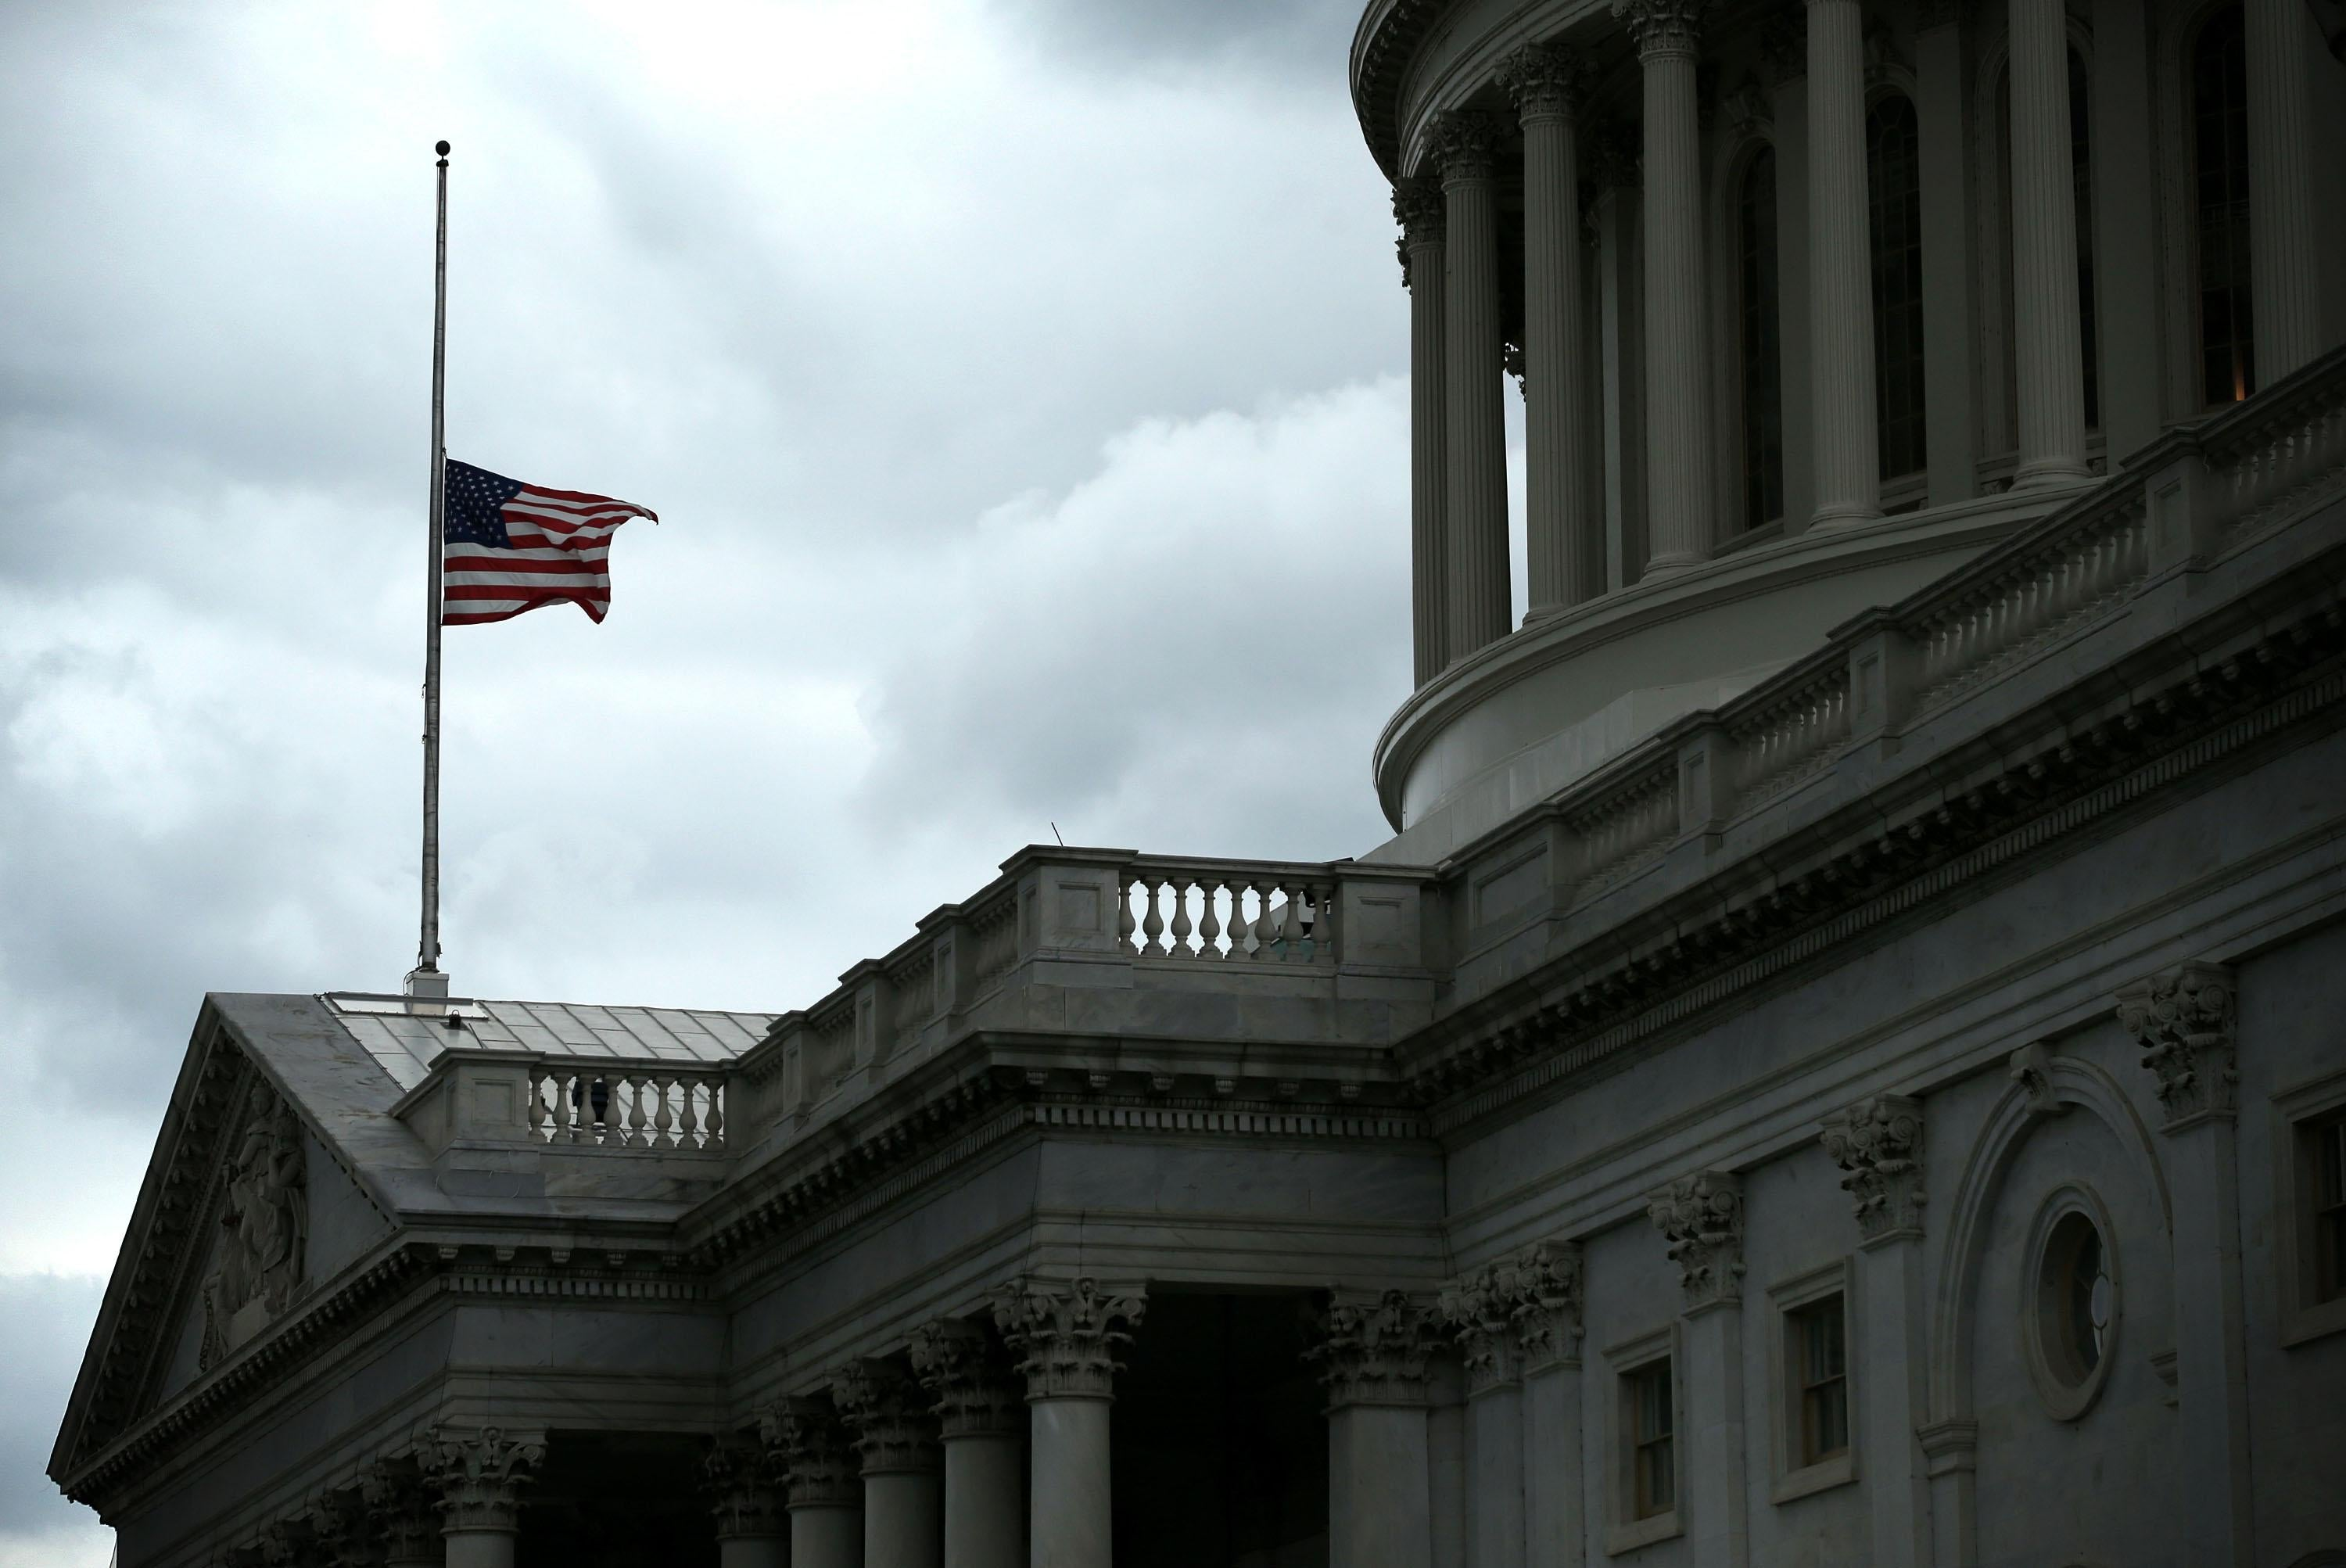 A flag at the U.S. Capitol flies at half-staff for the late Sen. Frank Lautenberg, D-N.J., June 6, 2013, in Washington, D.C.